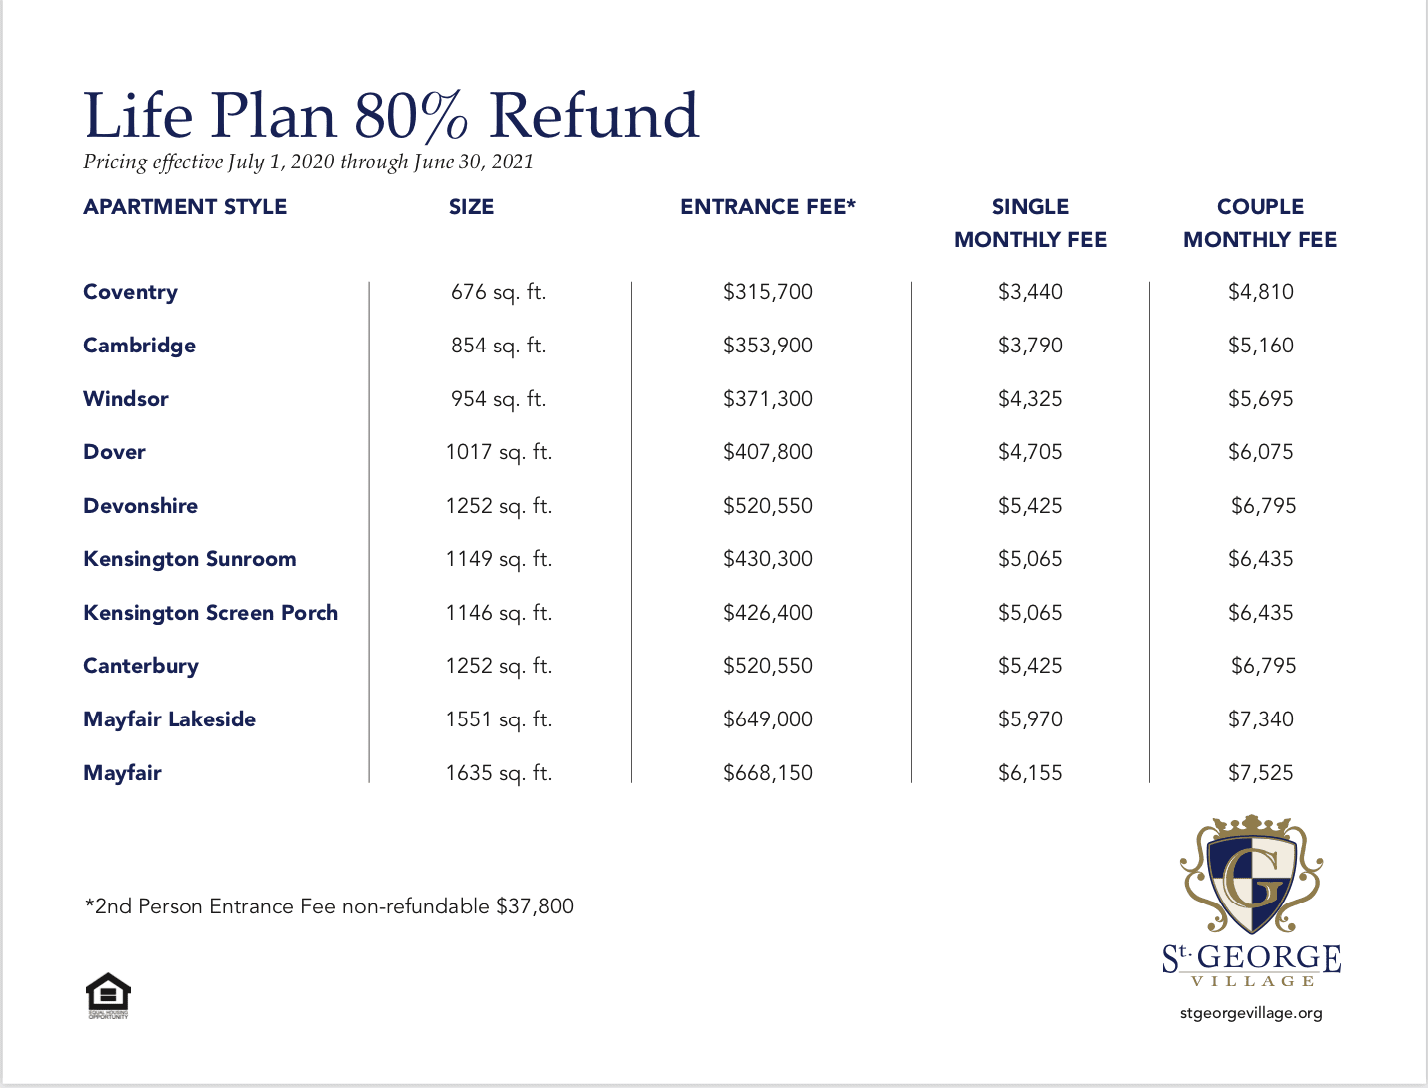 life plan 80% refund